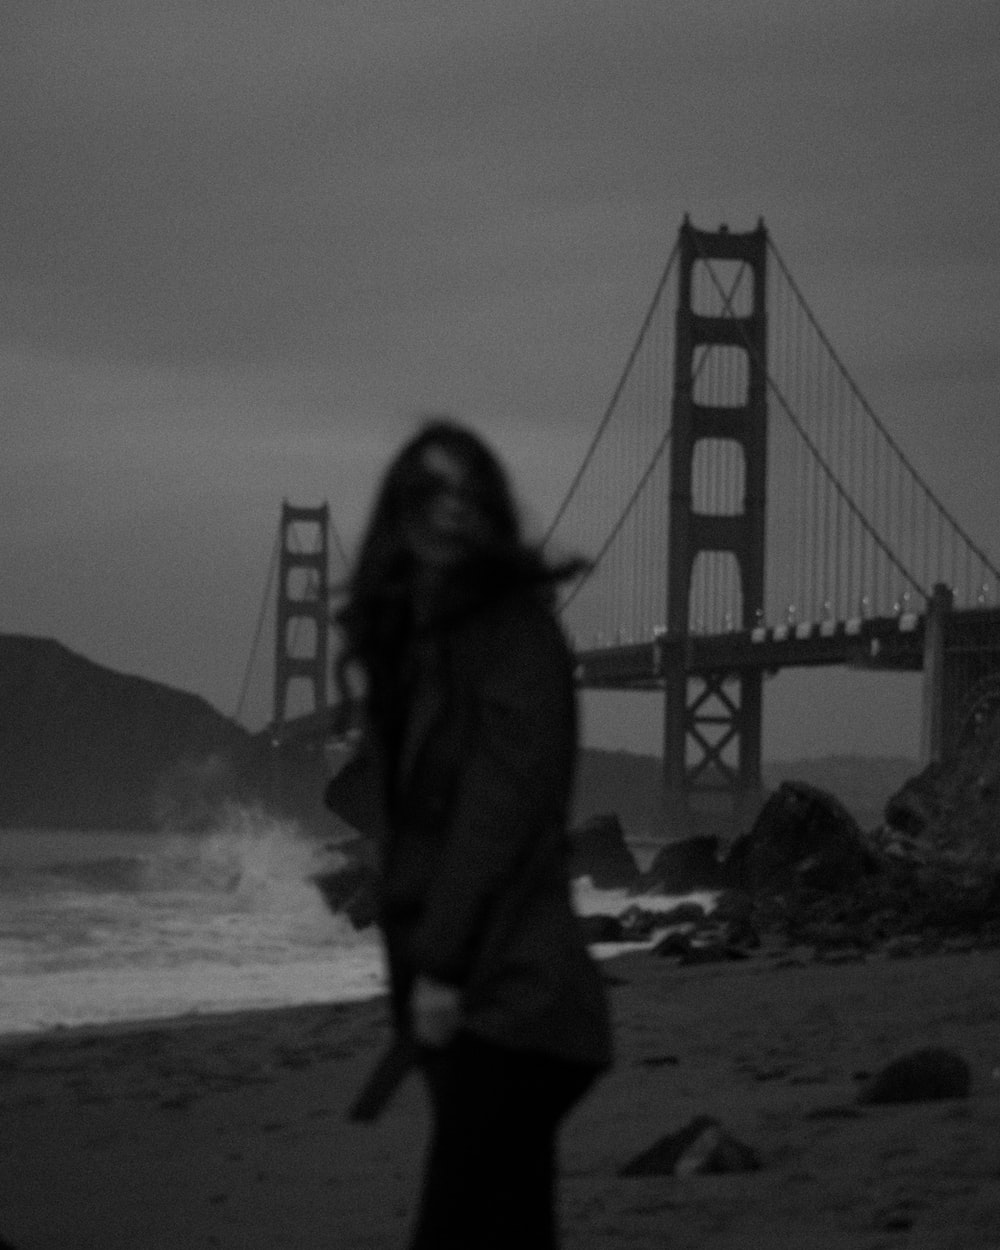 woman in jacket standing on beach near golden gate bridge in grayscale photography